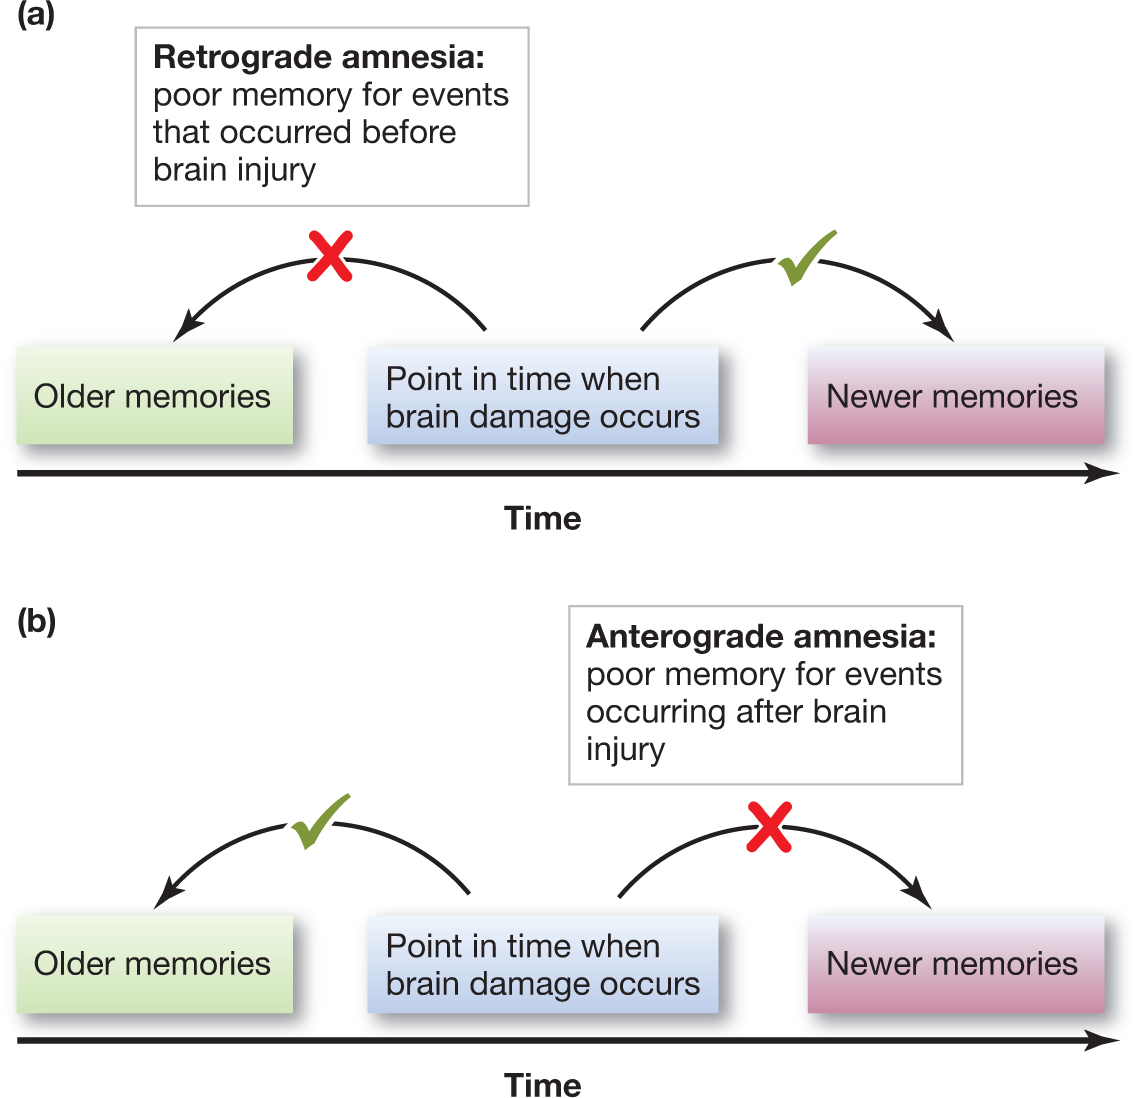 anterograde amnesia essay The following essay from a student illustrates both retrograde and anterograde amnesias triggered by a powerful hit on the football field my senior year in high school was looked upon at portal high as the year for a great football season.